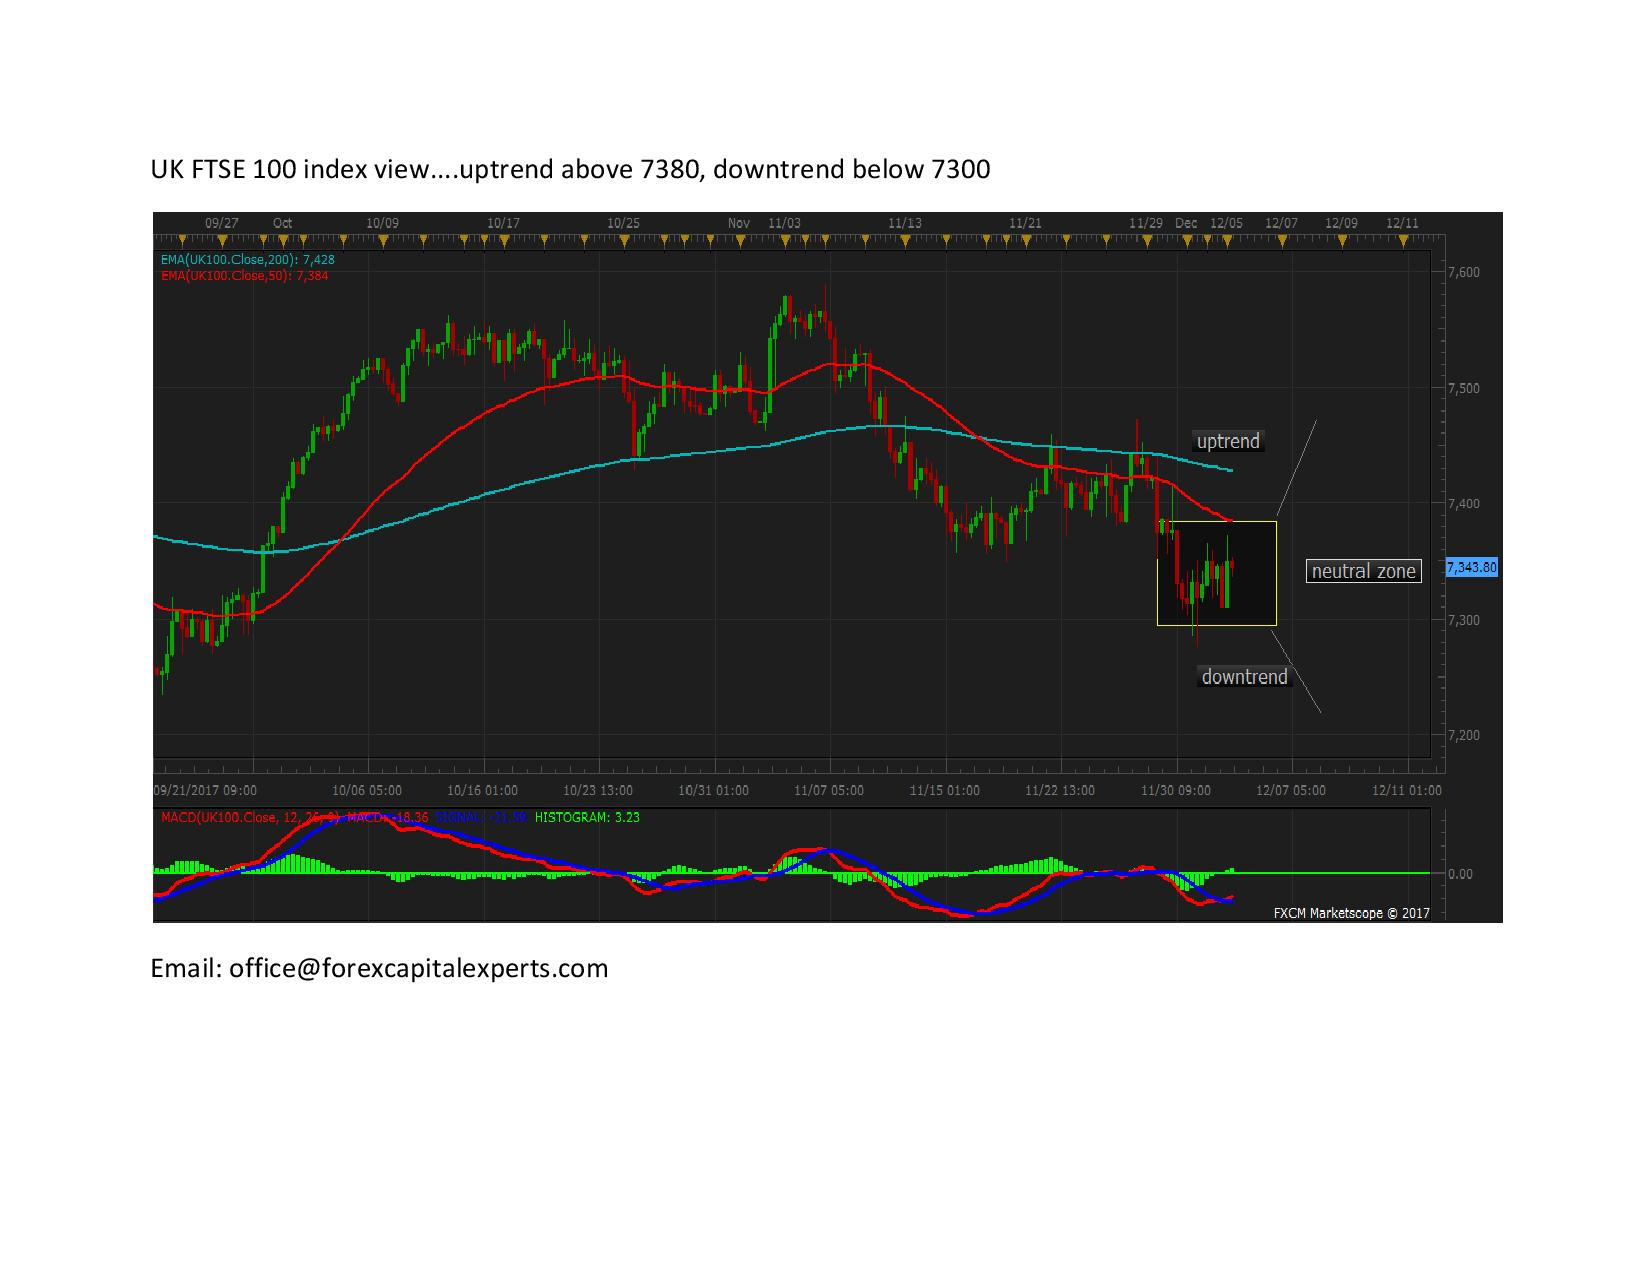 UK FTSE 100 idex view page 001